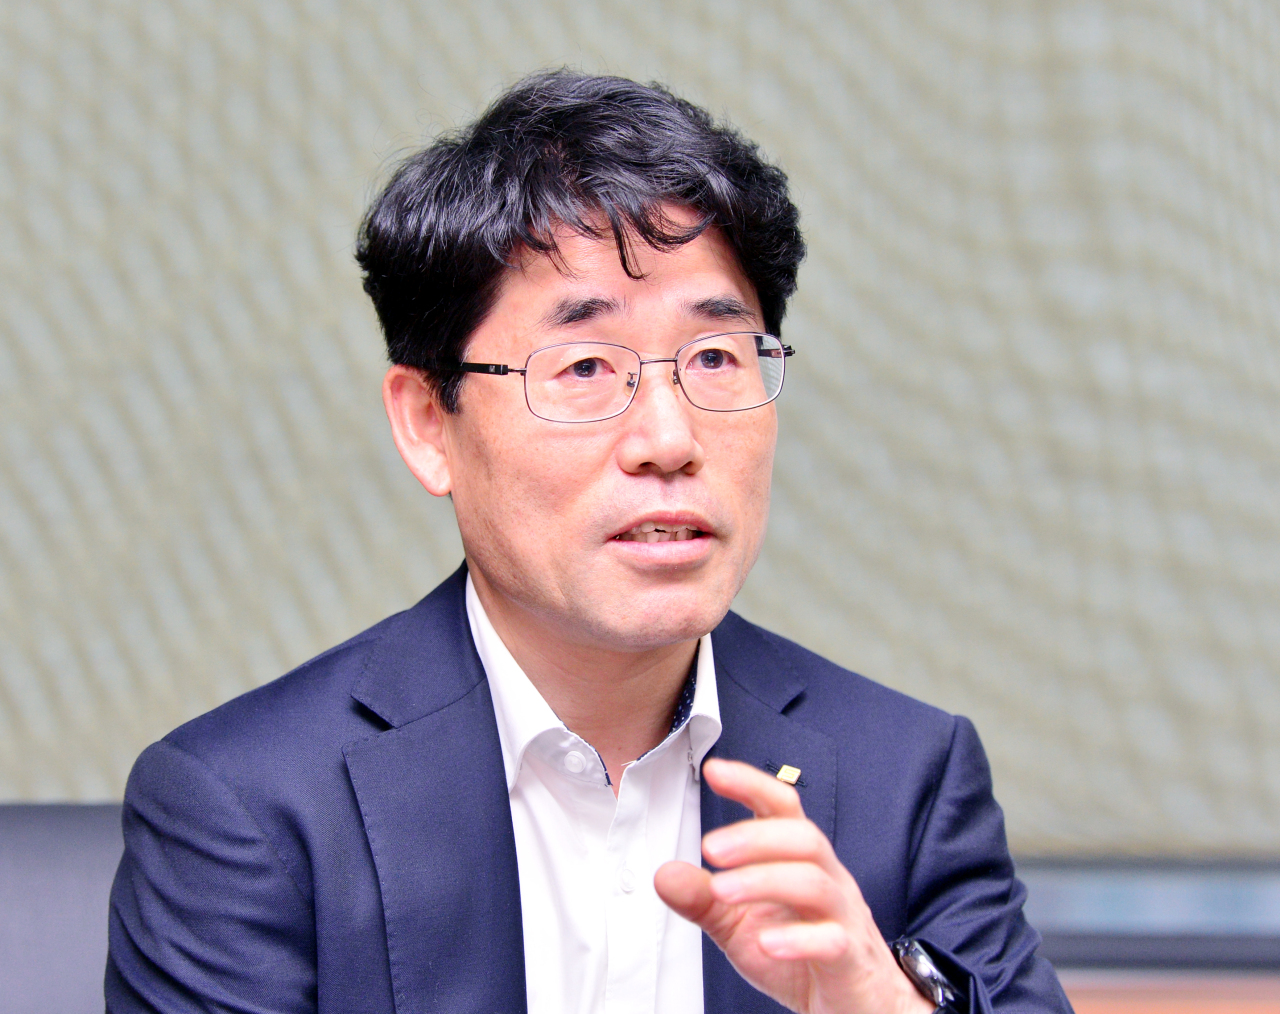 Financial Security Institute President Kim Young-gi speaks at an interview with The Korea Herald in Yeouido, Seoul, last week. (Park Hyun-koo/The Korea Herald)